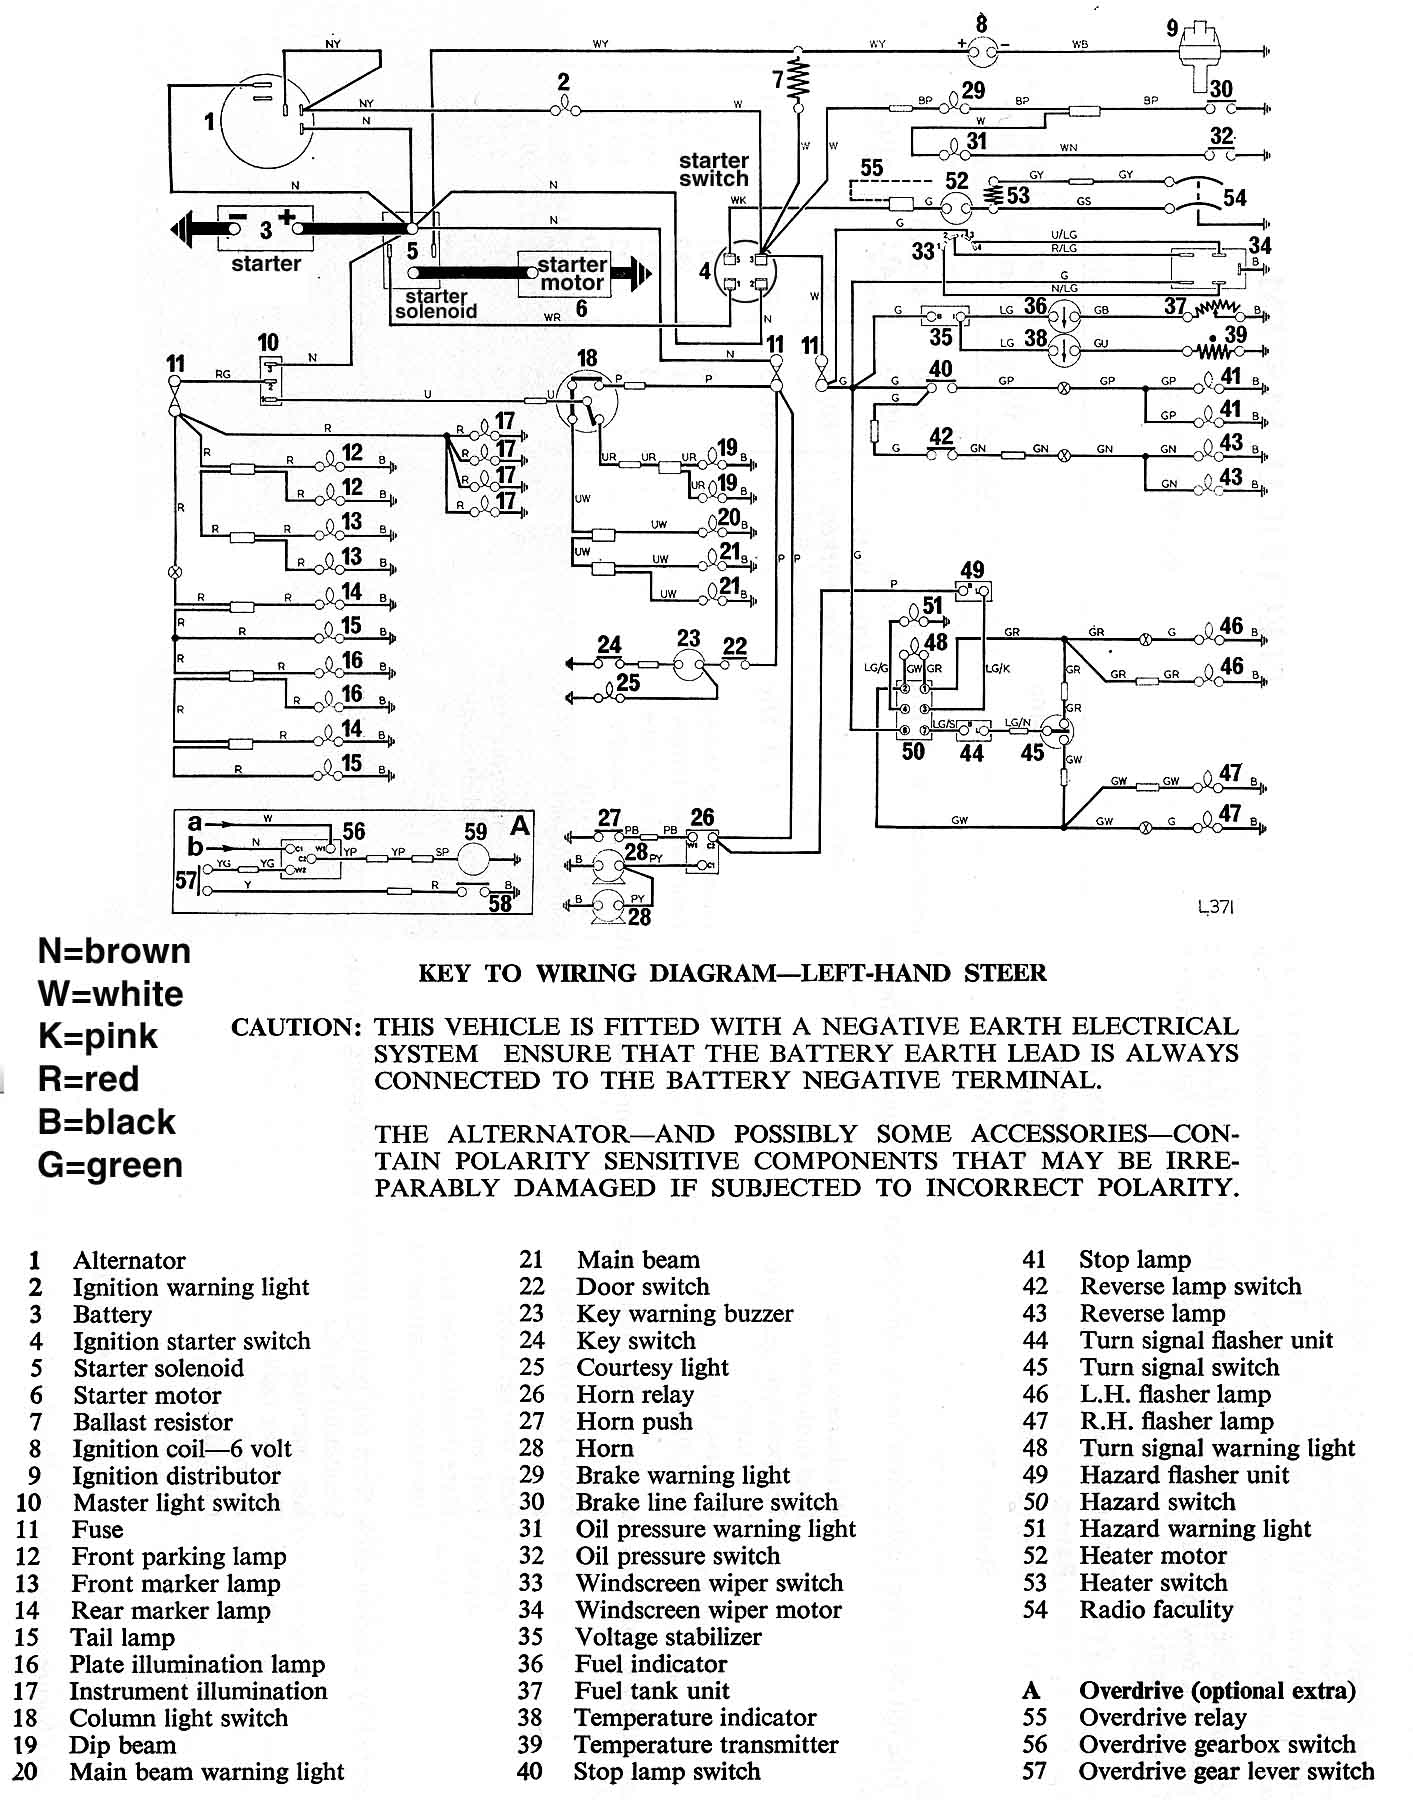 Mg Zr Wiring Diagram together with 16 1966 Mustang Manual furthermore 1965 Triumph Spitfire Mkii Wiring Diagram besides 73 Beetle Wiring Diagram furthermore Index. on 1974 mgb wiring diagram